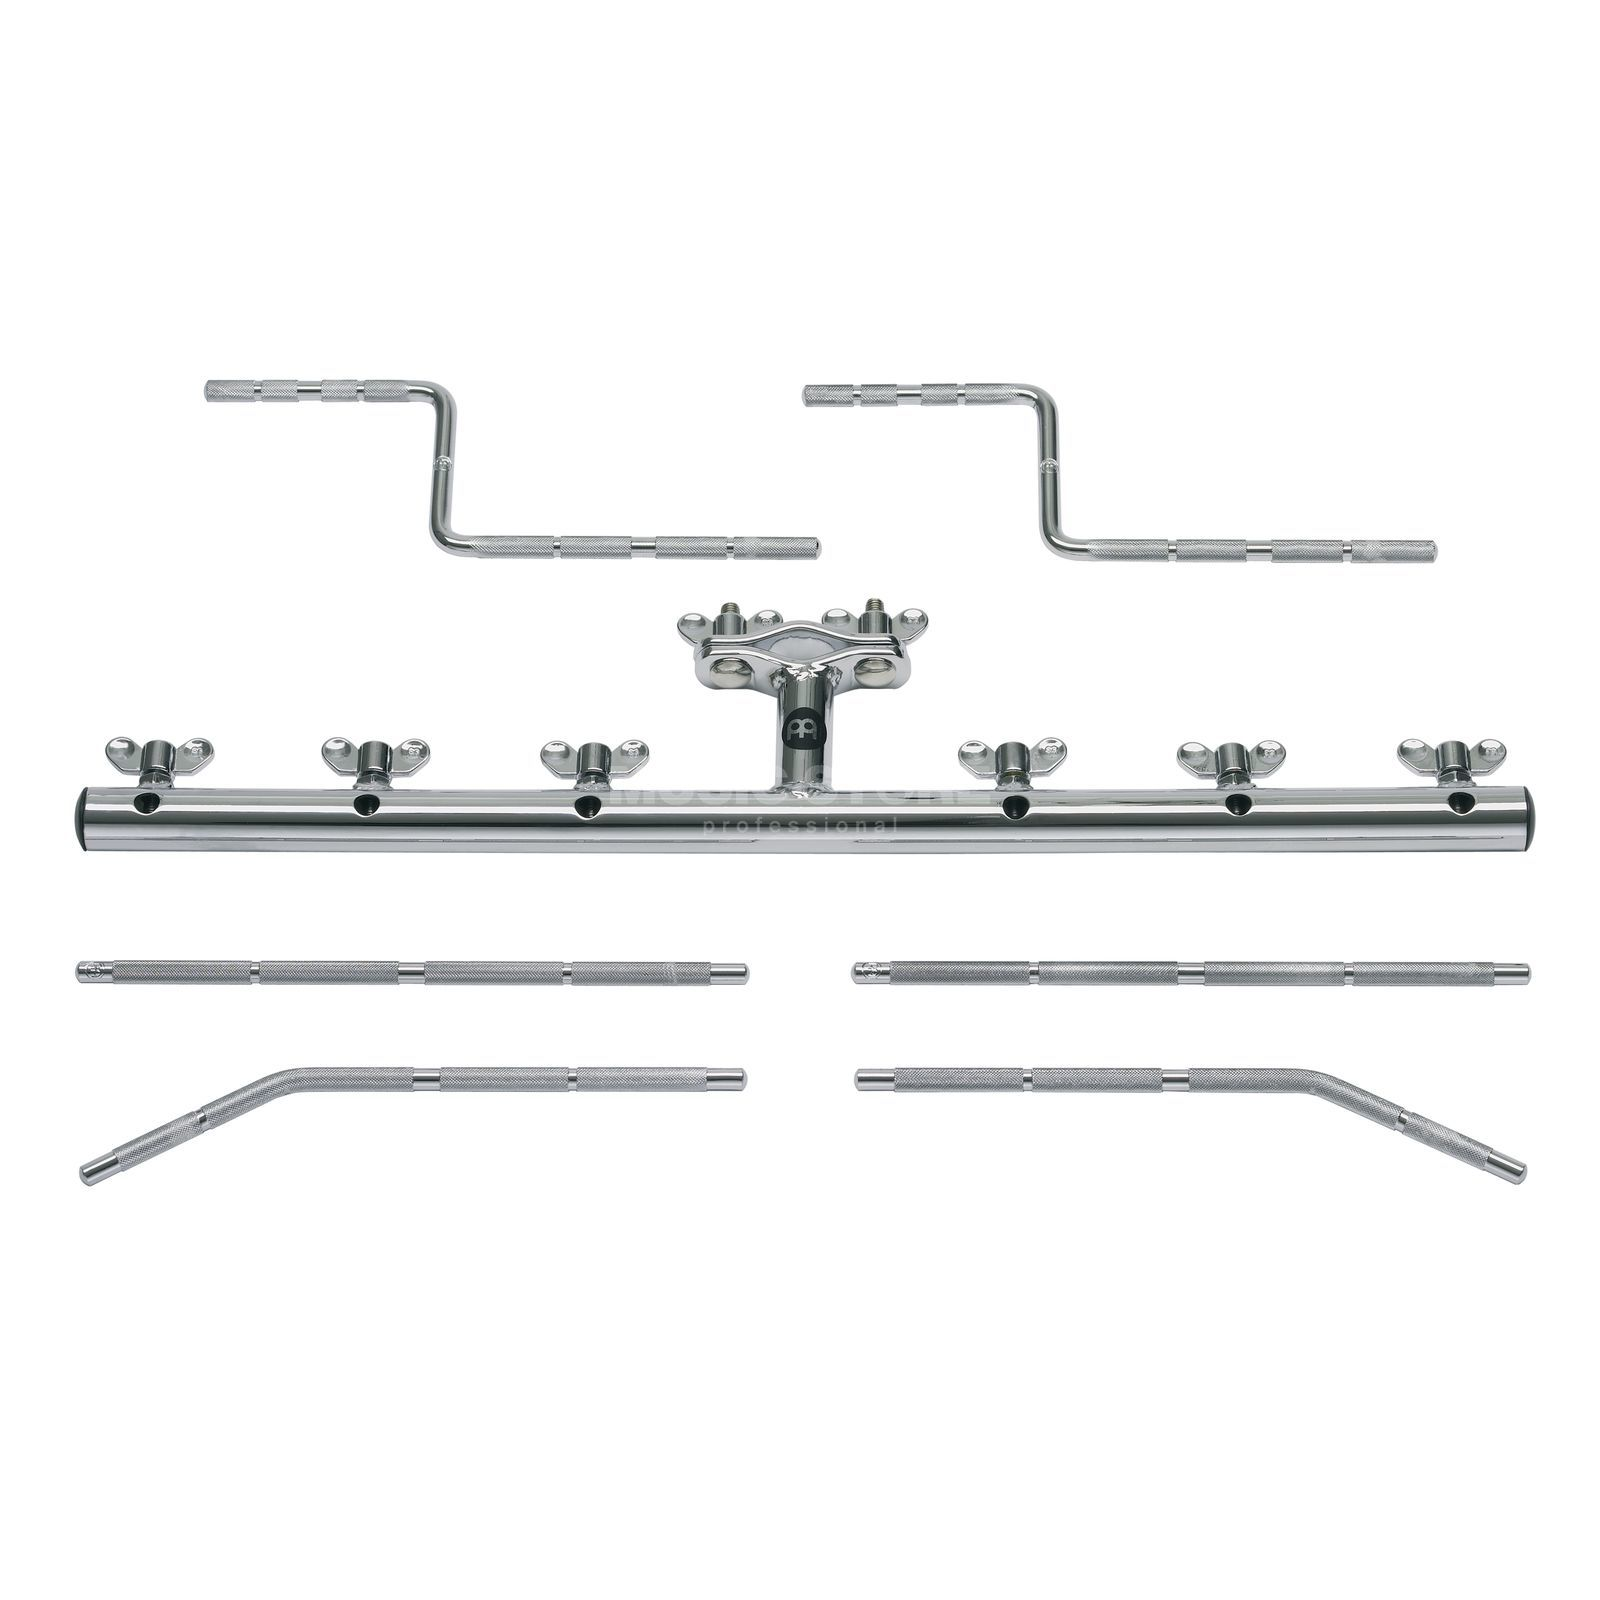 Meinl Percussion Rack PMC-7 Product Image